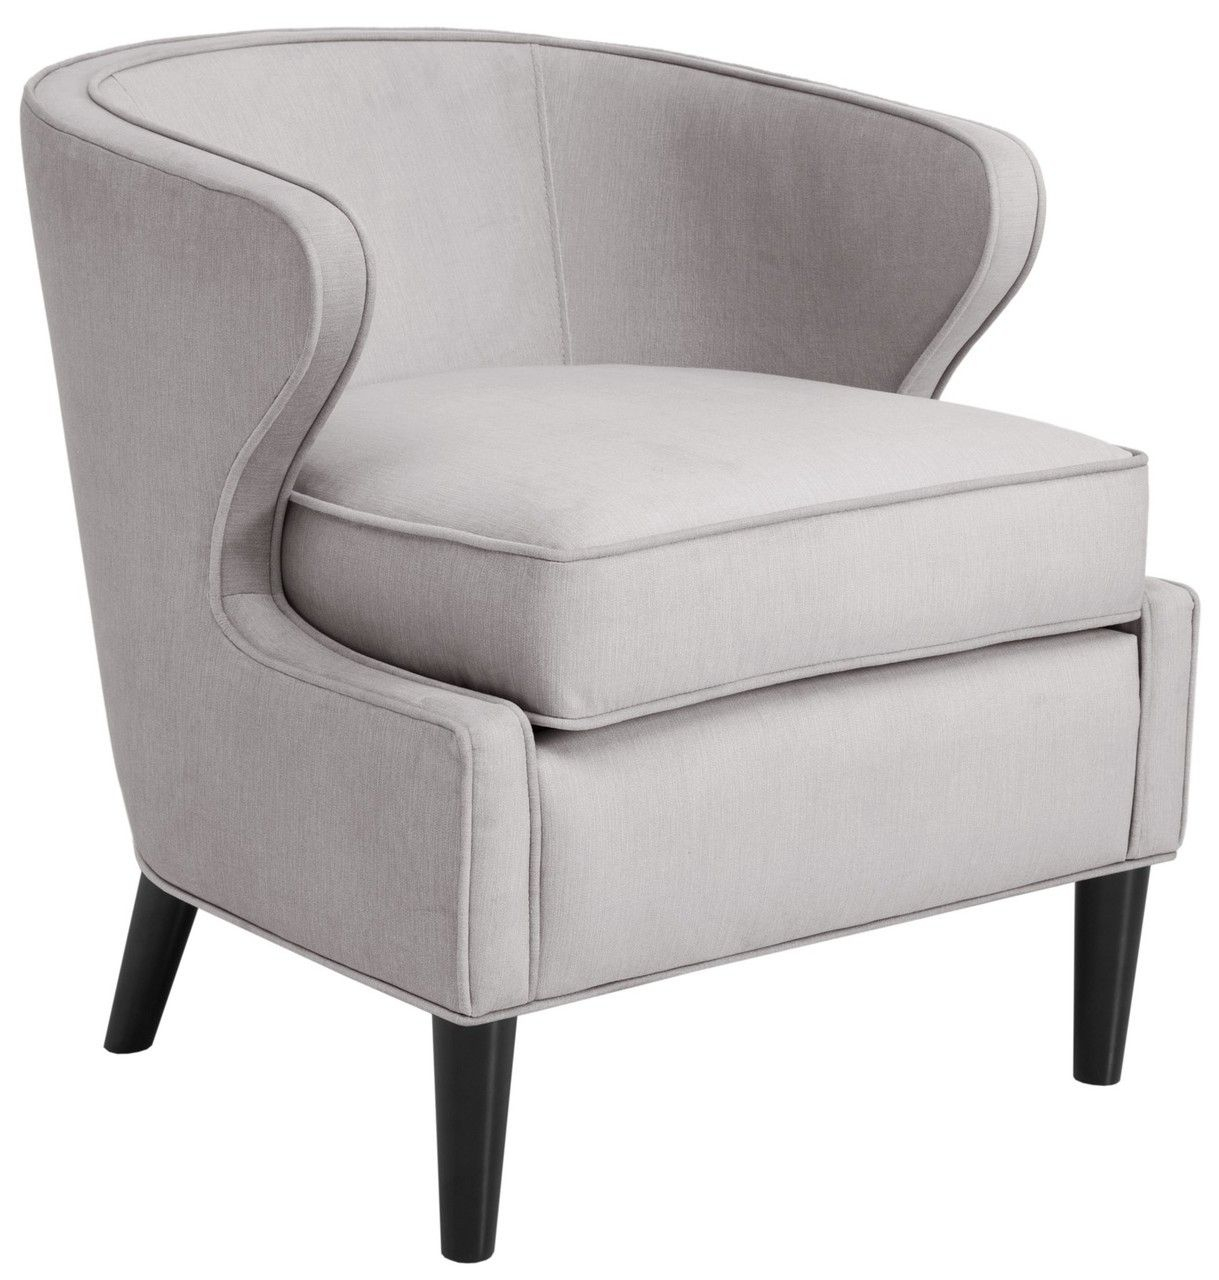 Lucca Barrel Chair – Gray | Fabric Accent Chair, Mattress Inside Lau Barrel Chairs (View 5 of 15)